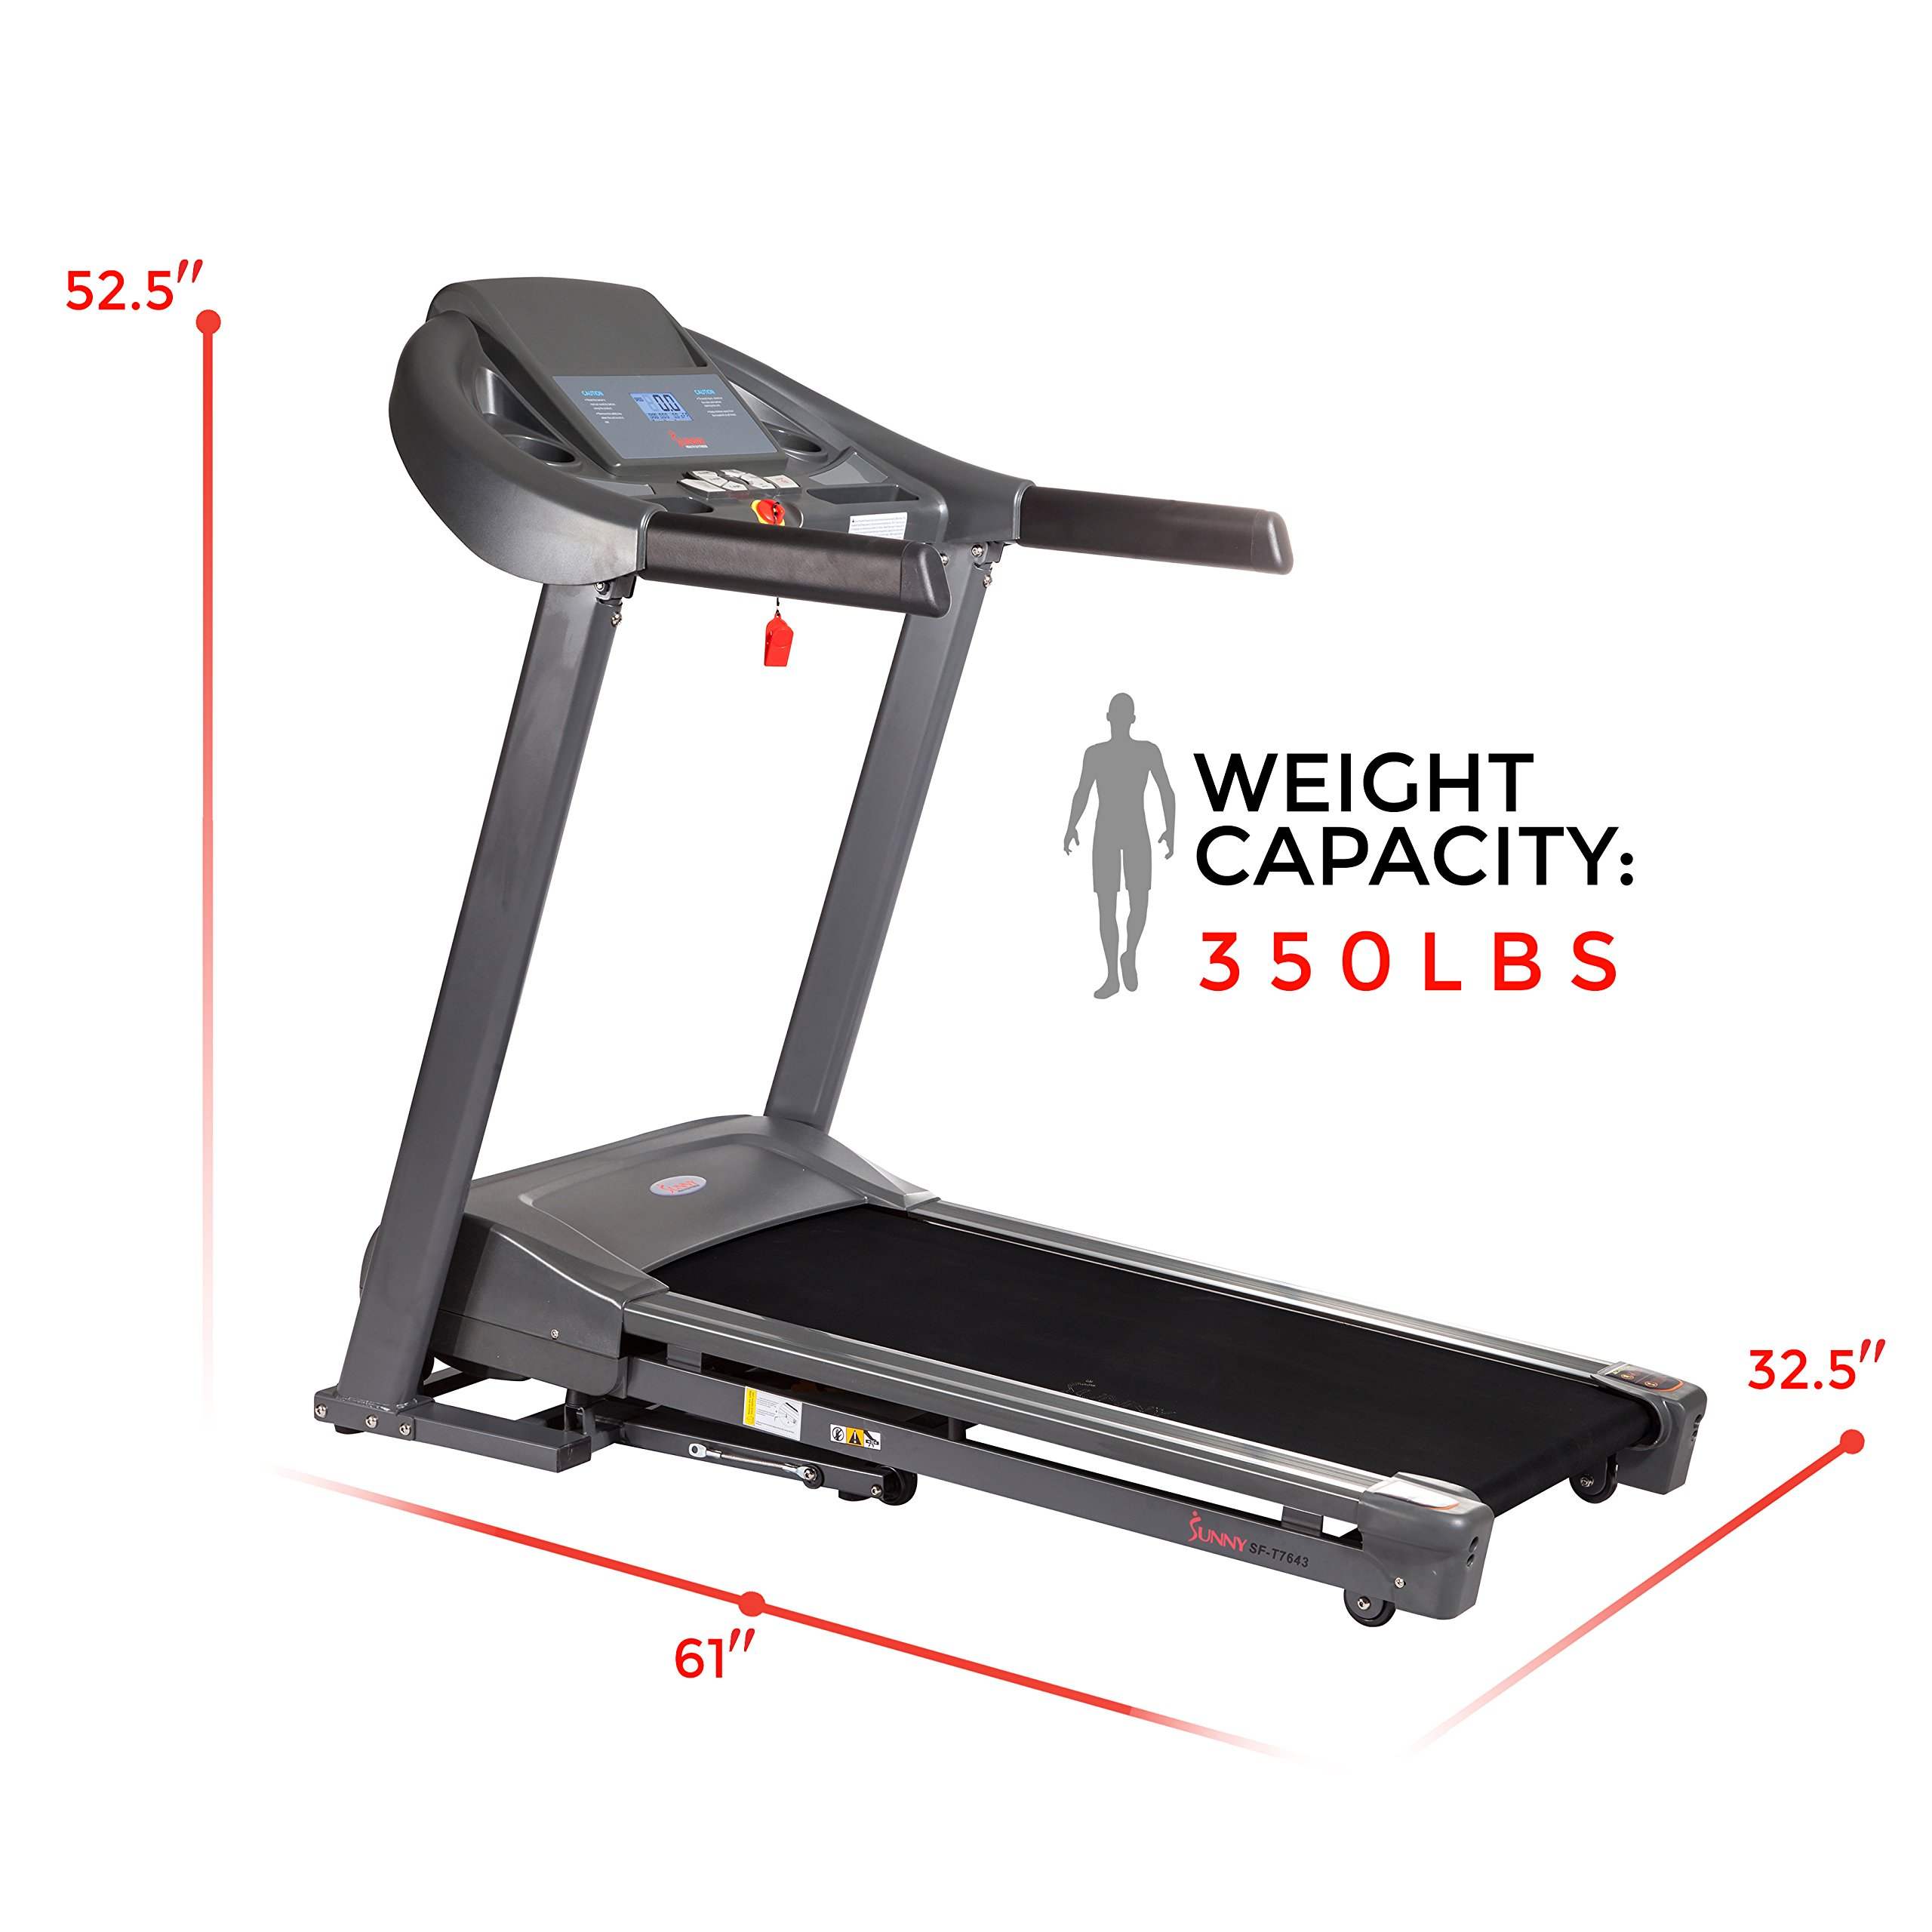 Sunny Health & Fitness T7643 Heavy Duty Walking Treadmill with 350 lb Capacity Heavy Duty Walking Treadmill by Sunny Health & Fitness (Image #4)